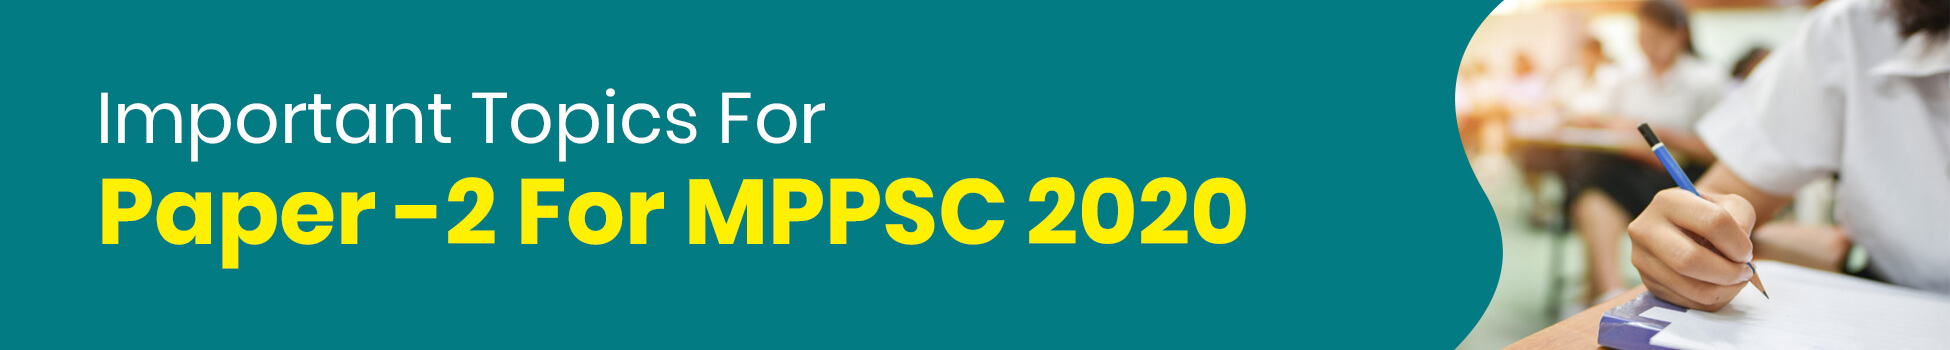 Important Topics For Paper-2 For MPPSC 2020